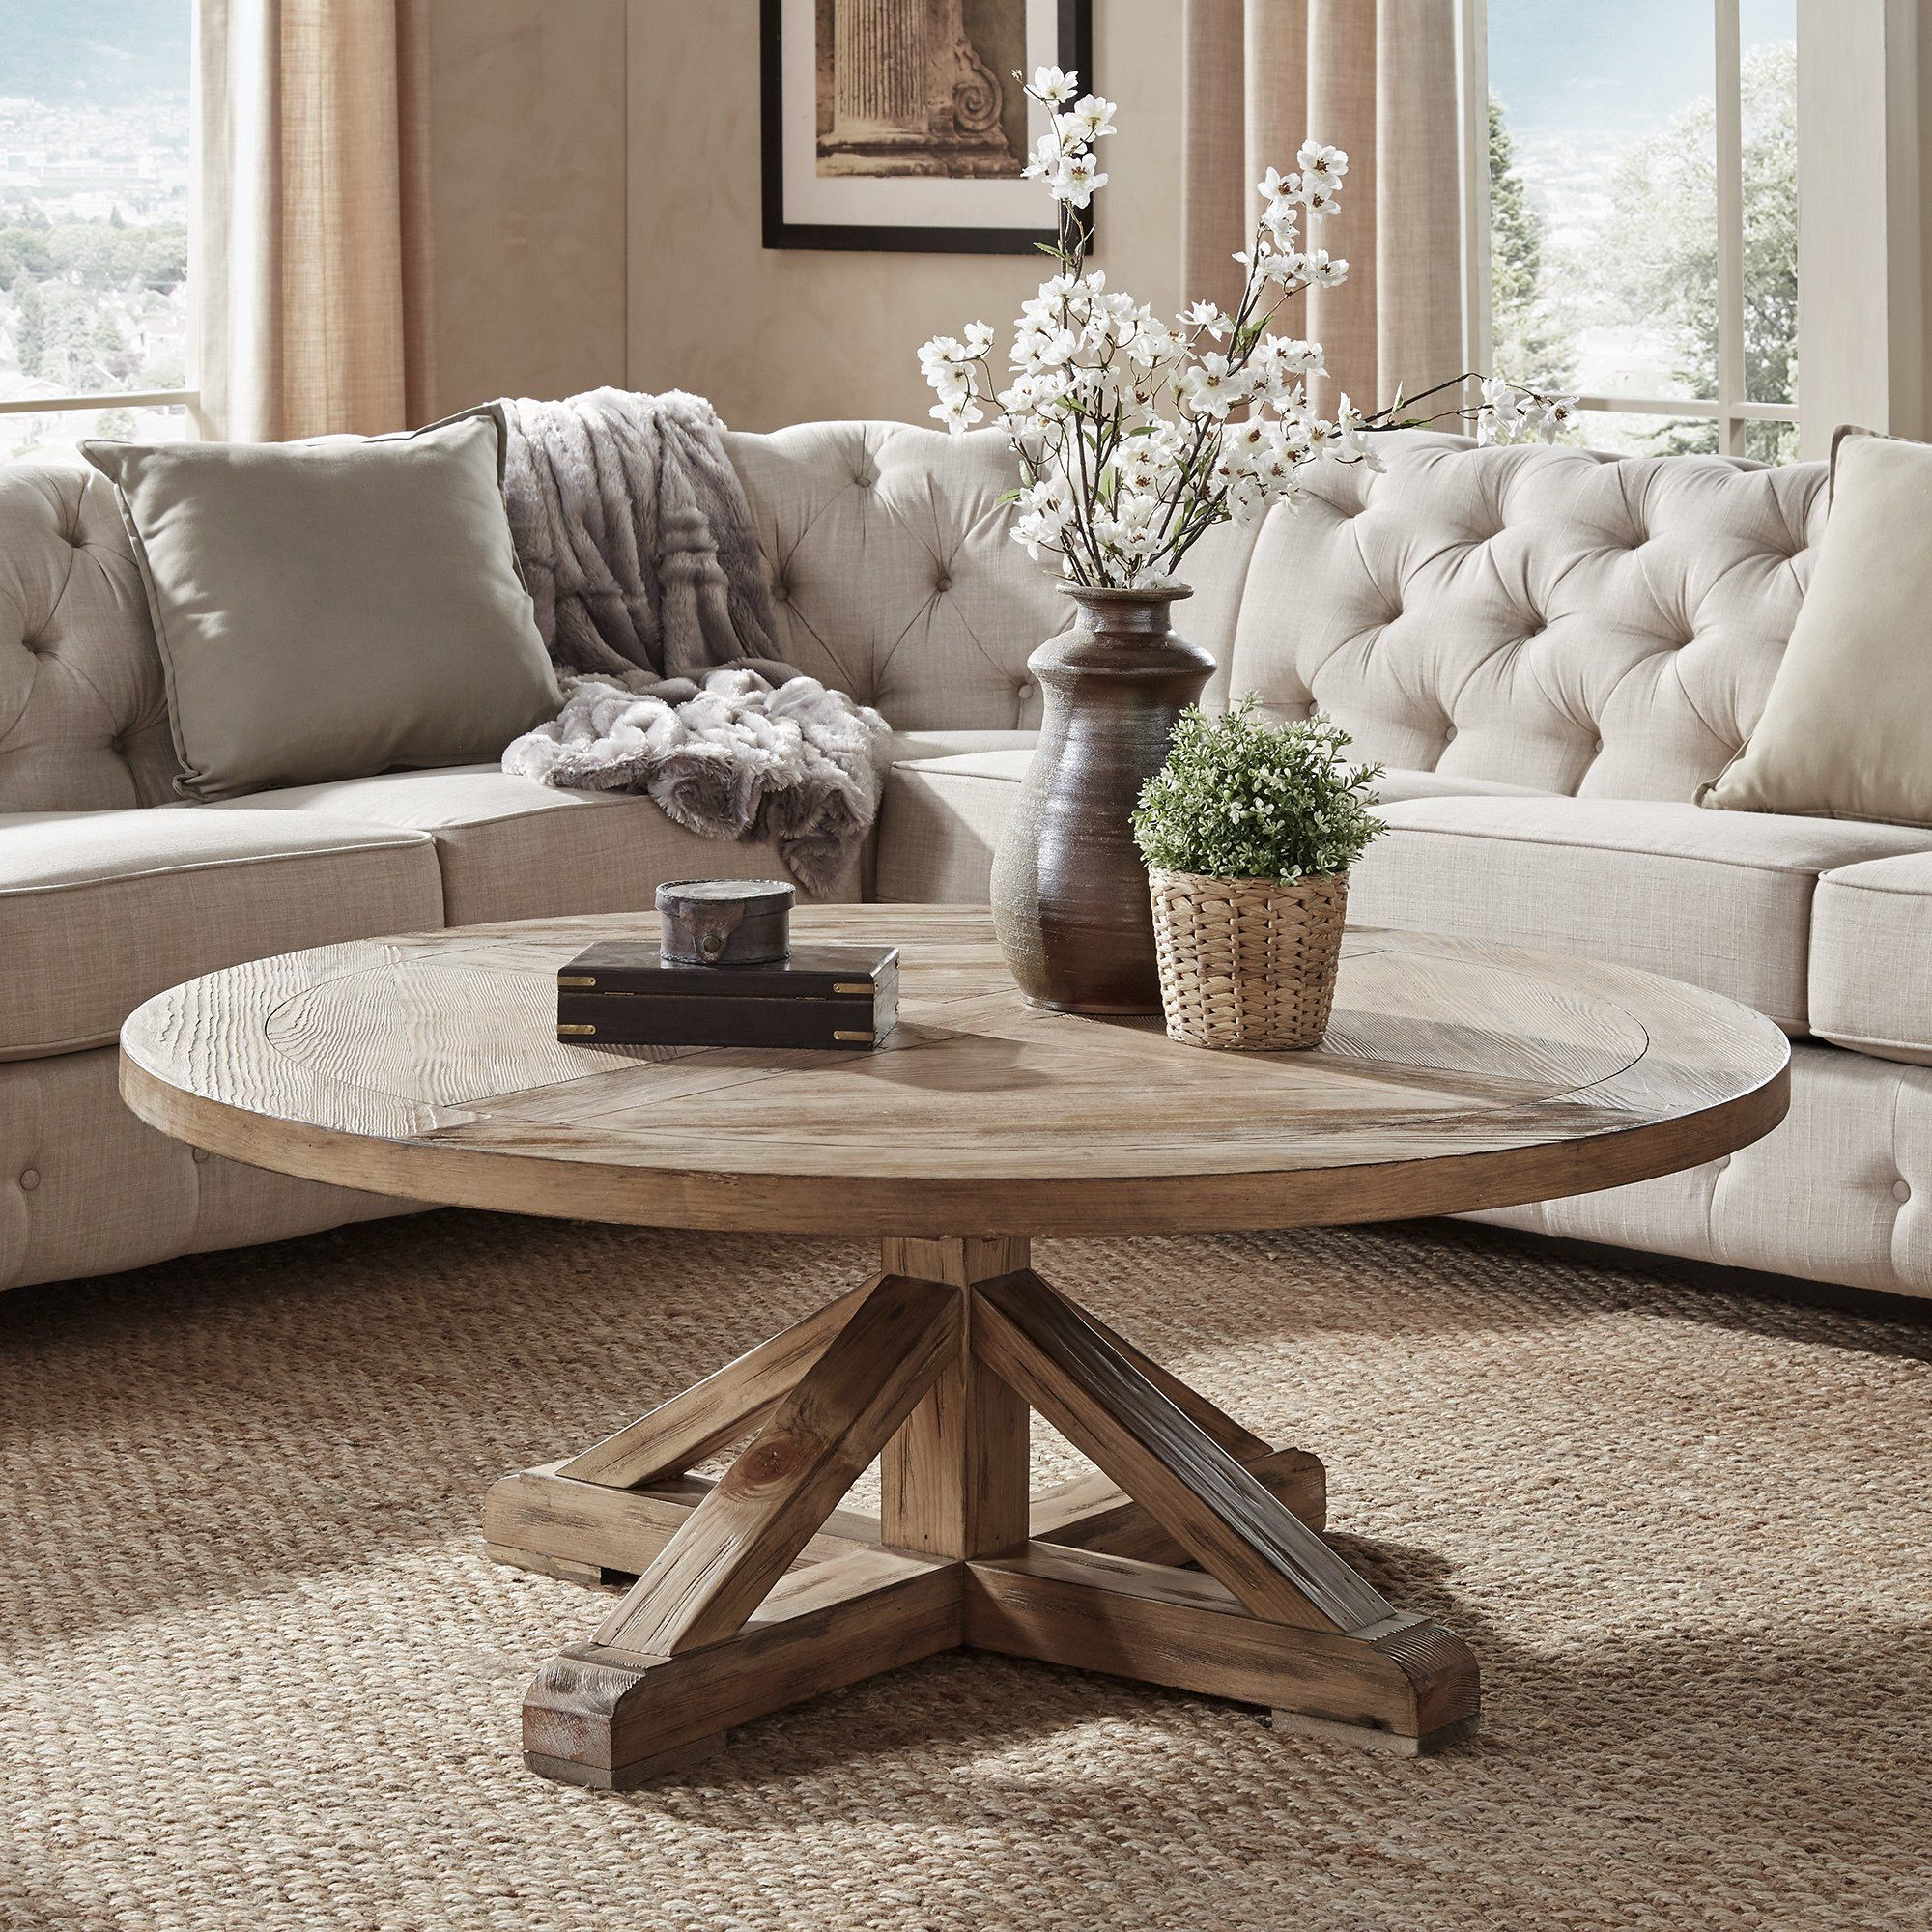 Benchwright Rustic X-Base Round Pine Wood Coffee Table by iNSPIRE Q Artisan | Coffee table ...